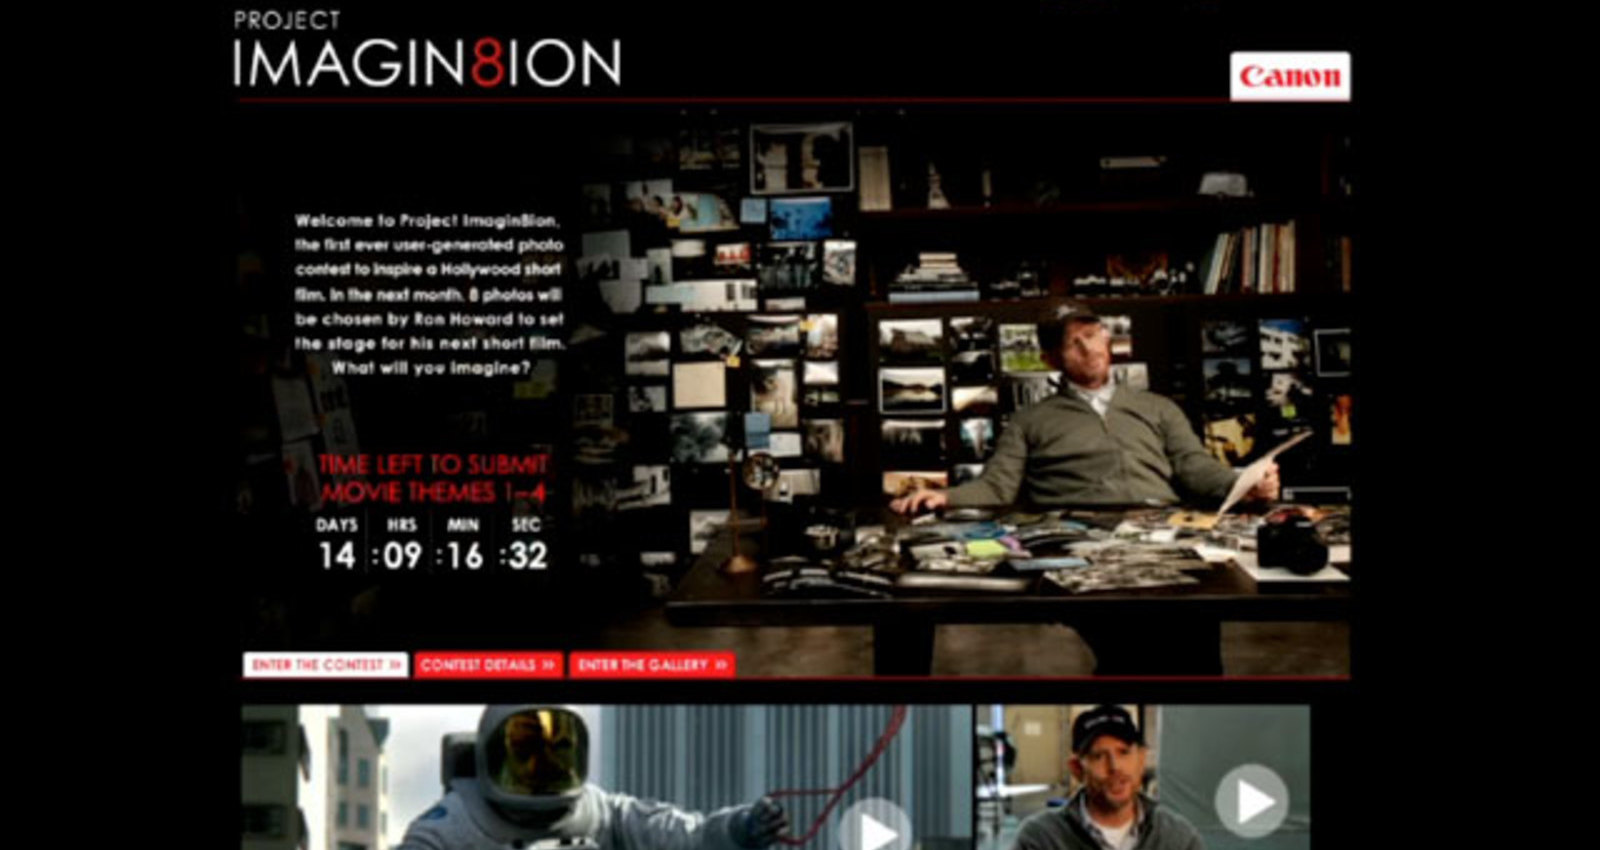 Long Live Imagination, Project Imagin8ion